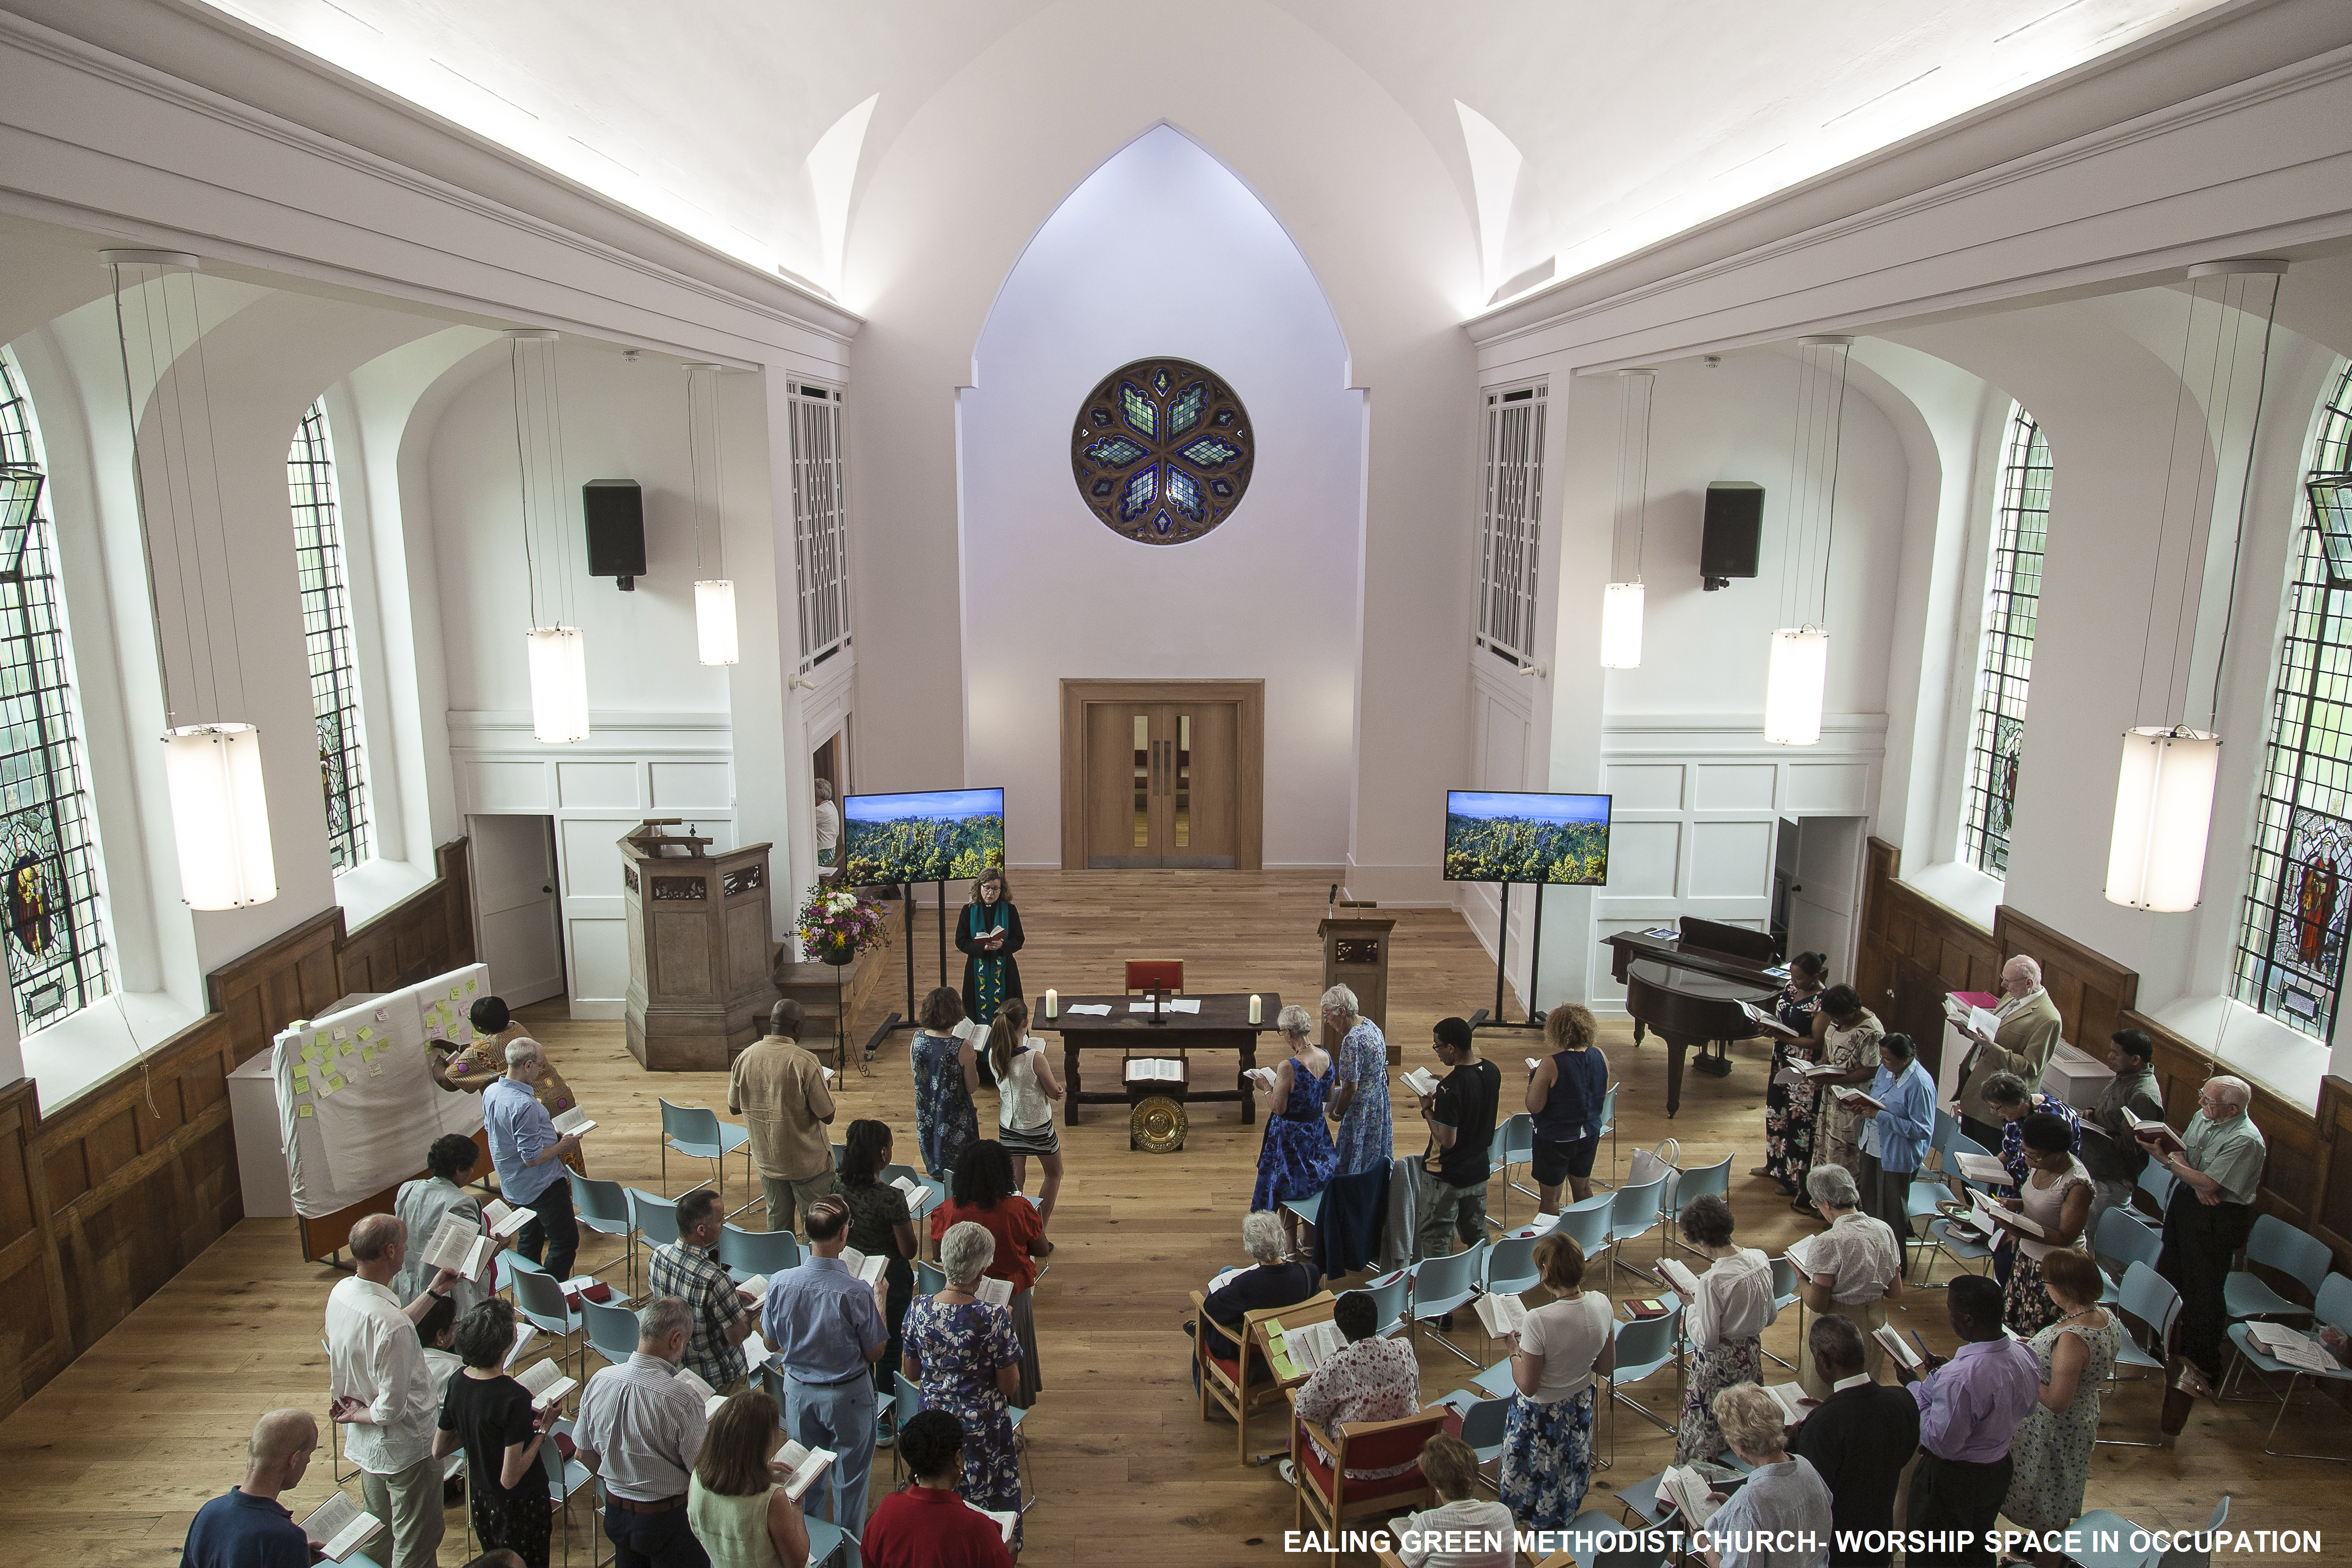 Ealing Green Church - the Worship space in occupation